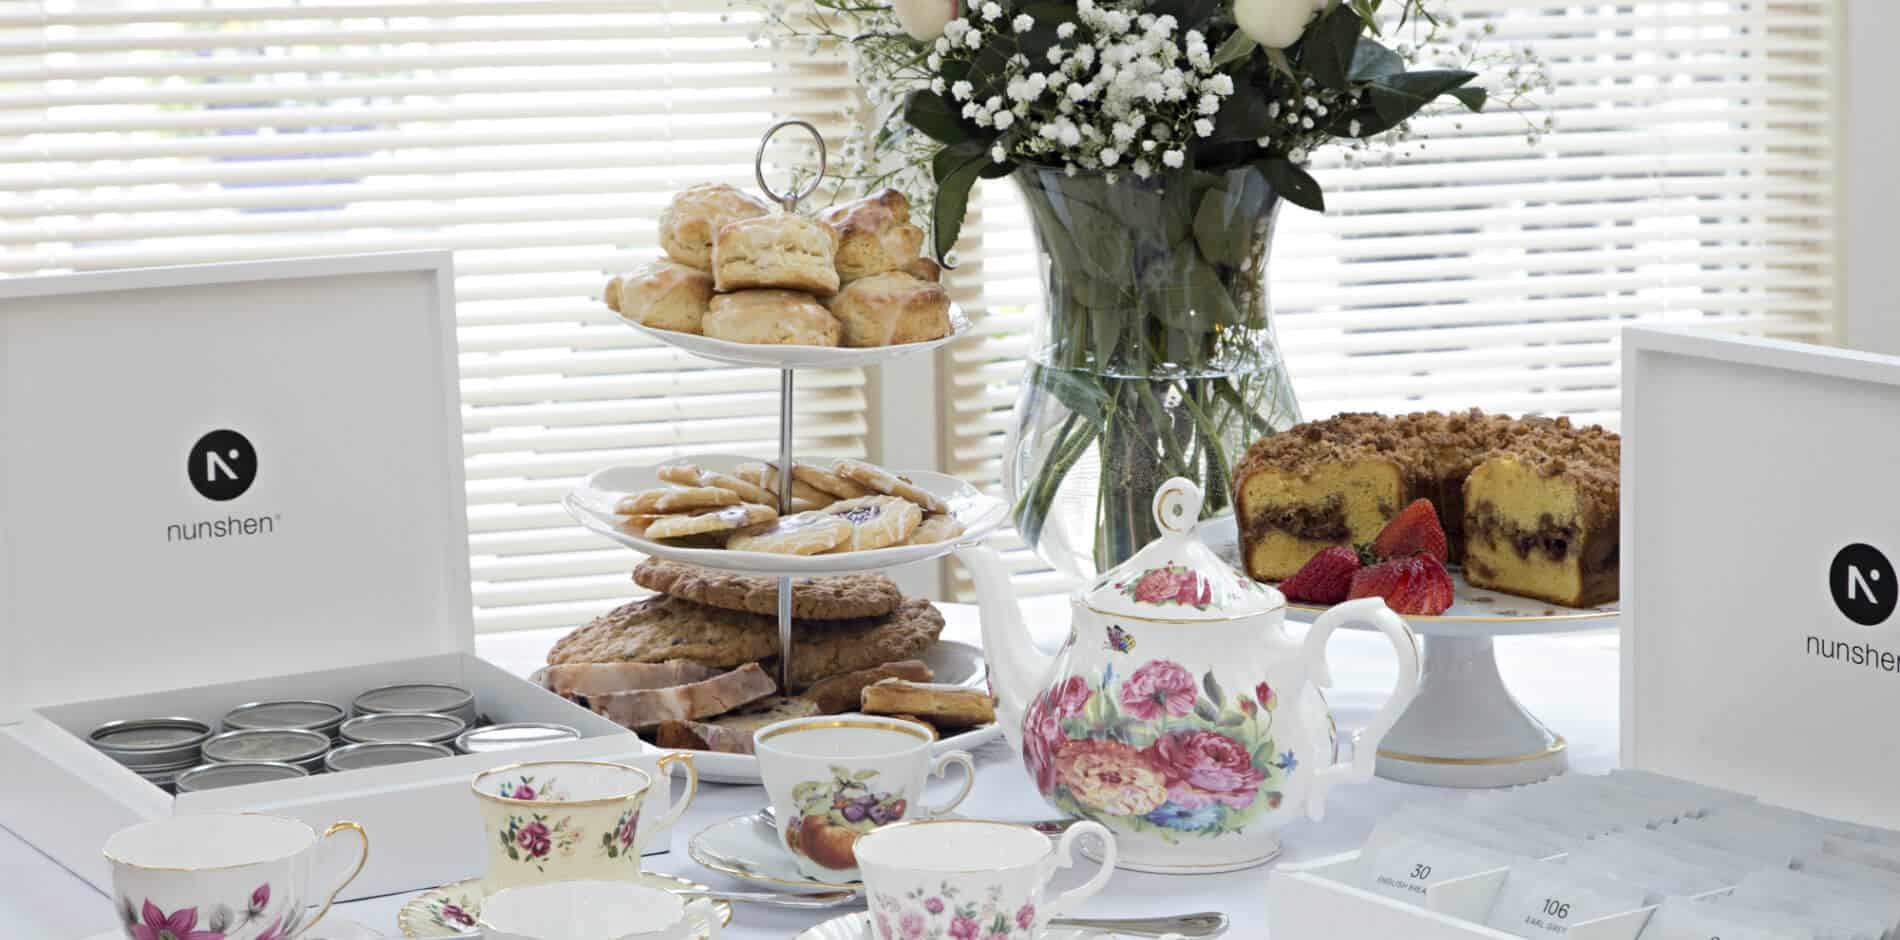 Display of teas in white tea boxes, with fine china cups, saucers and tea pot in front of cinnamon crumb bundt cake with fresh strawberries on top of china cake platter and three level plate holder with coodies on the bottom, fresh pastries in the middle and scones on the top.